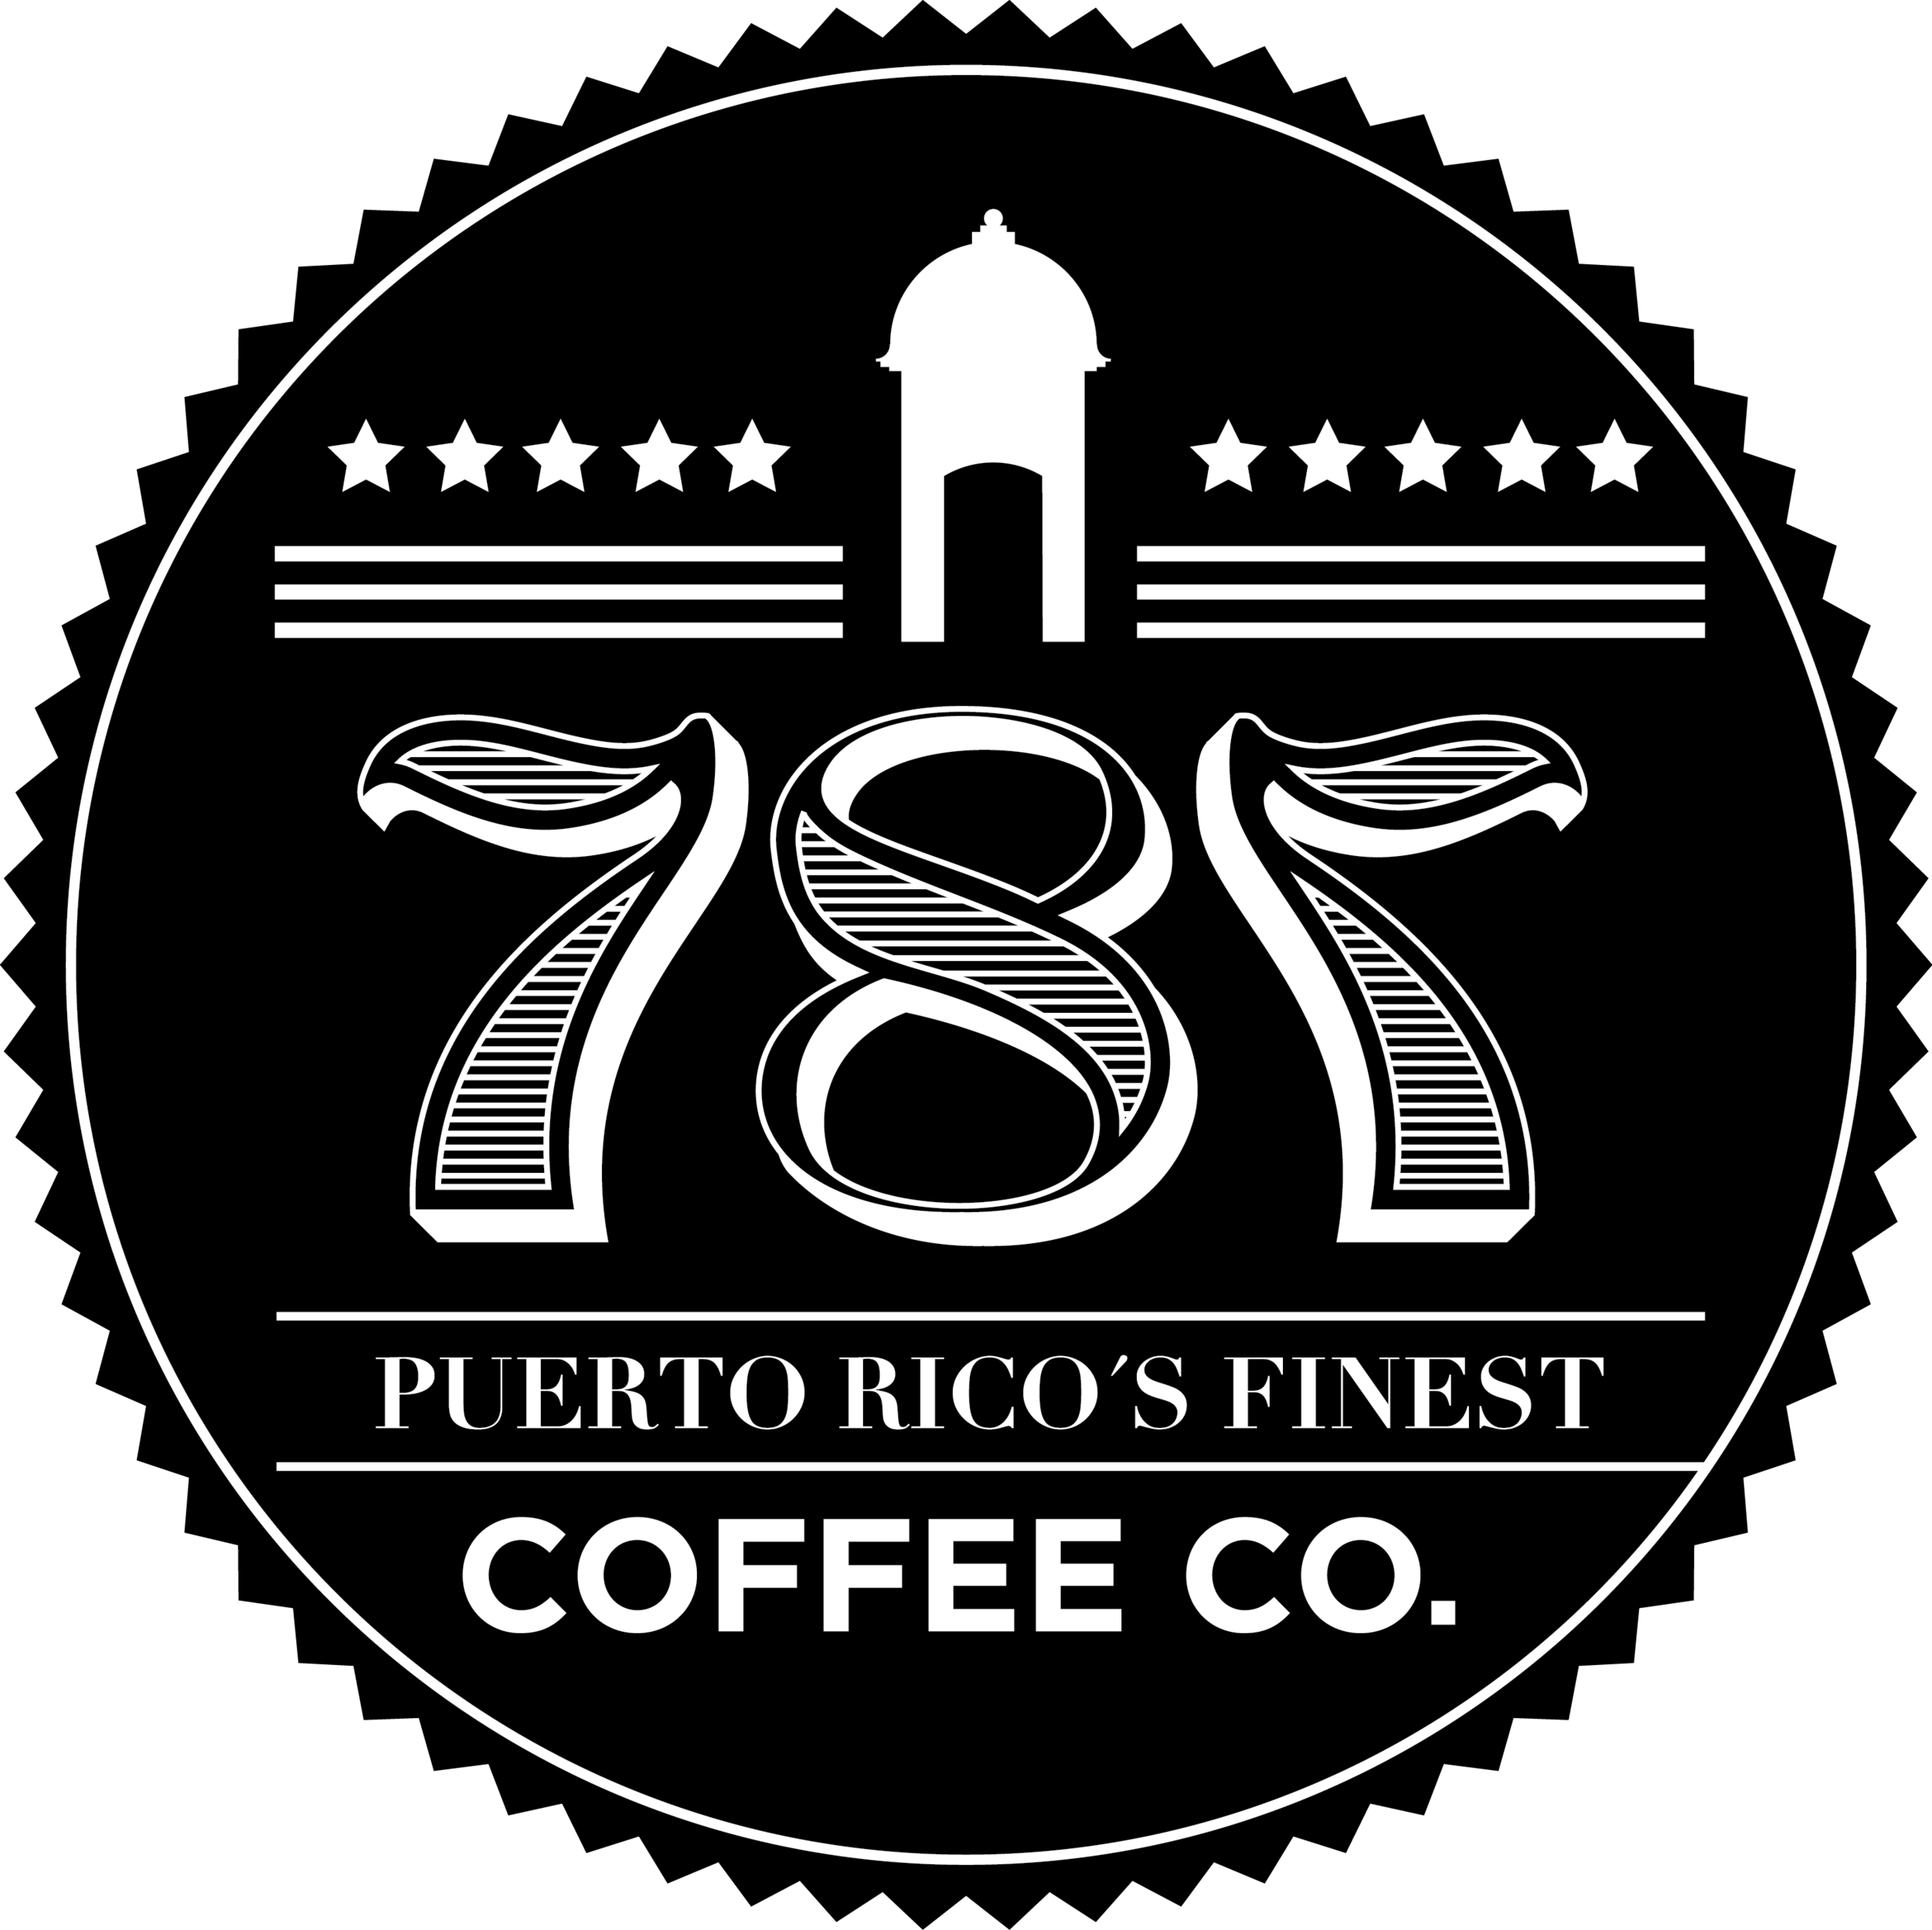 787-CoffeeCo.png